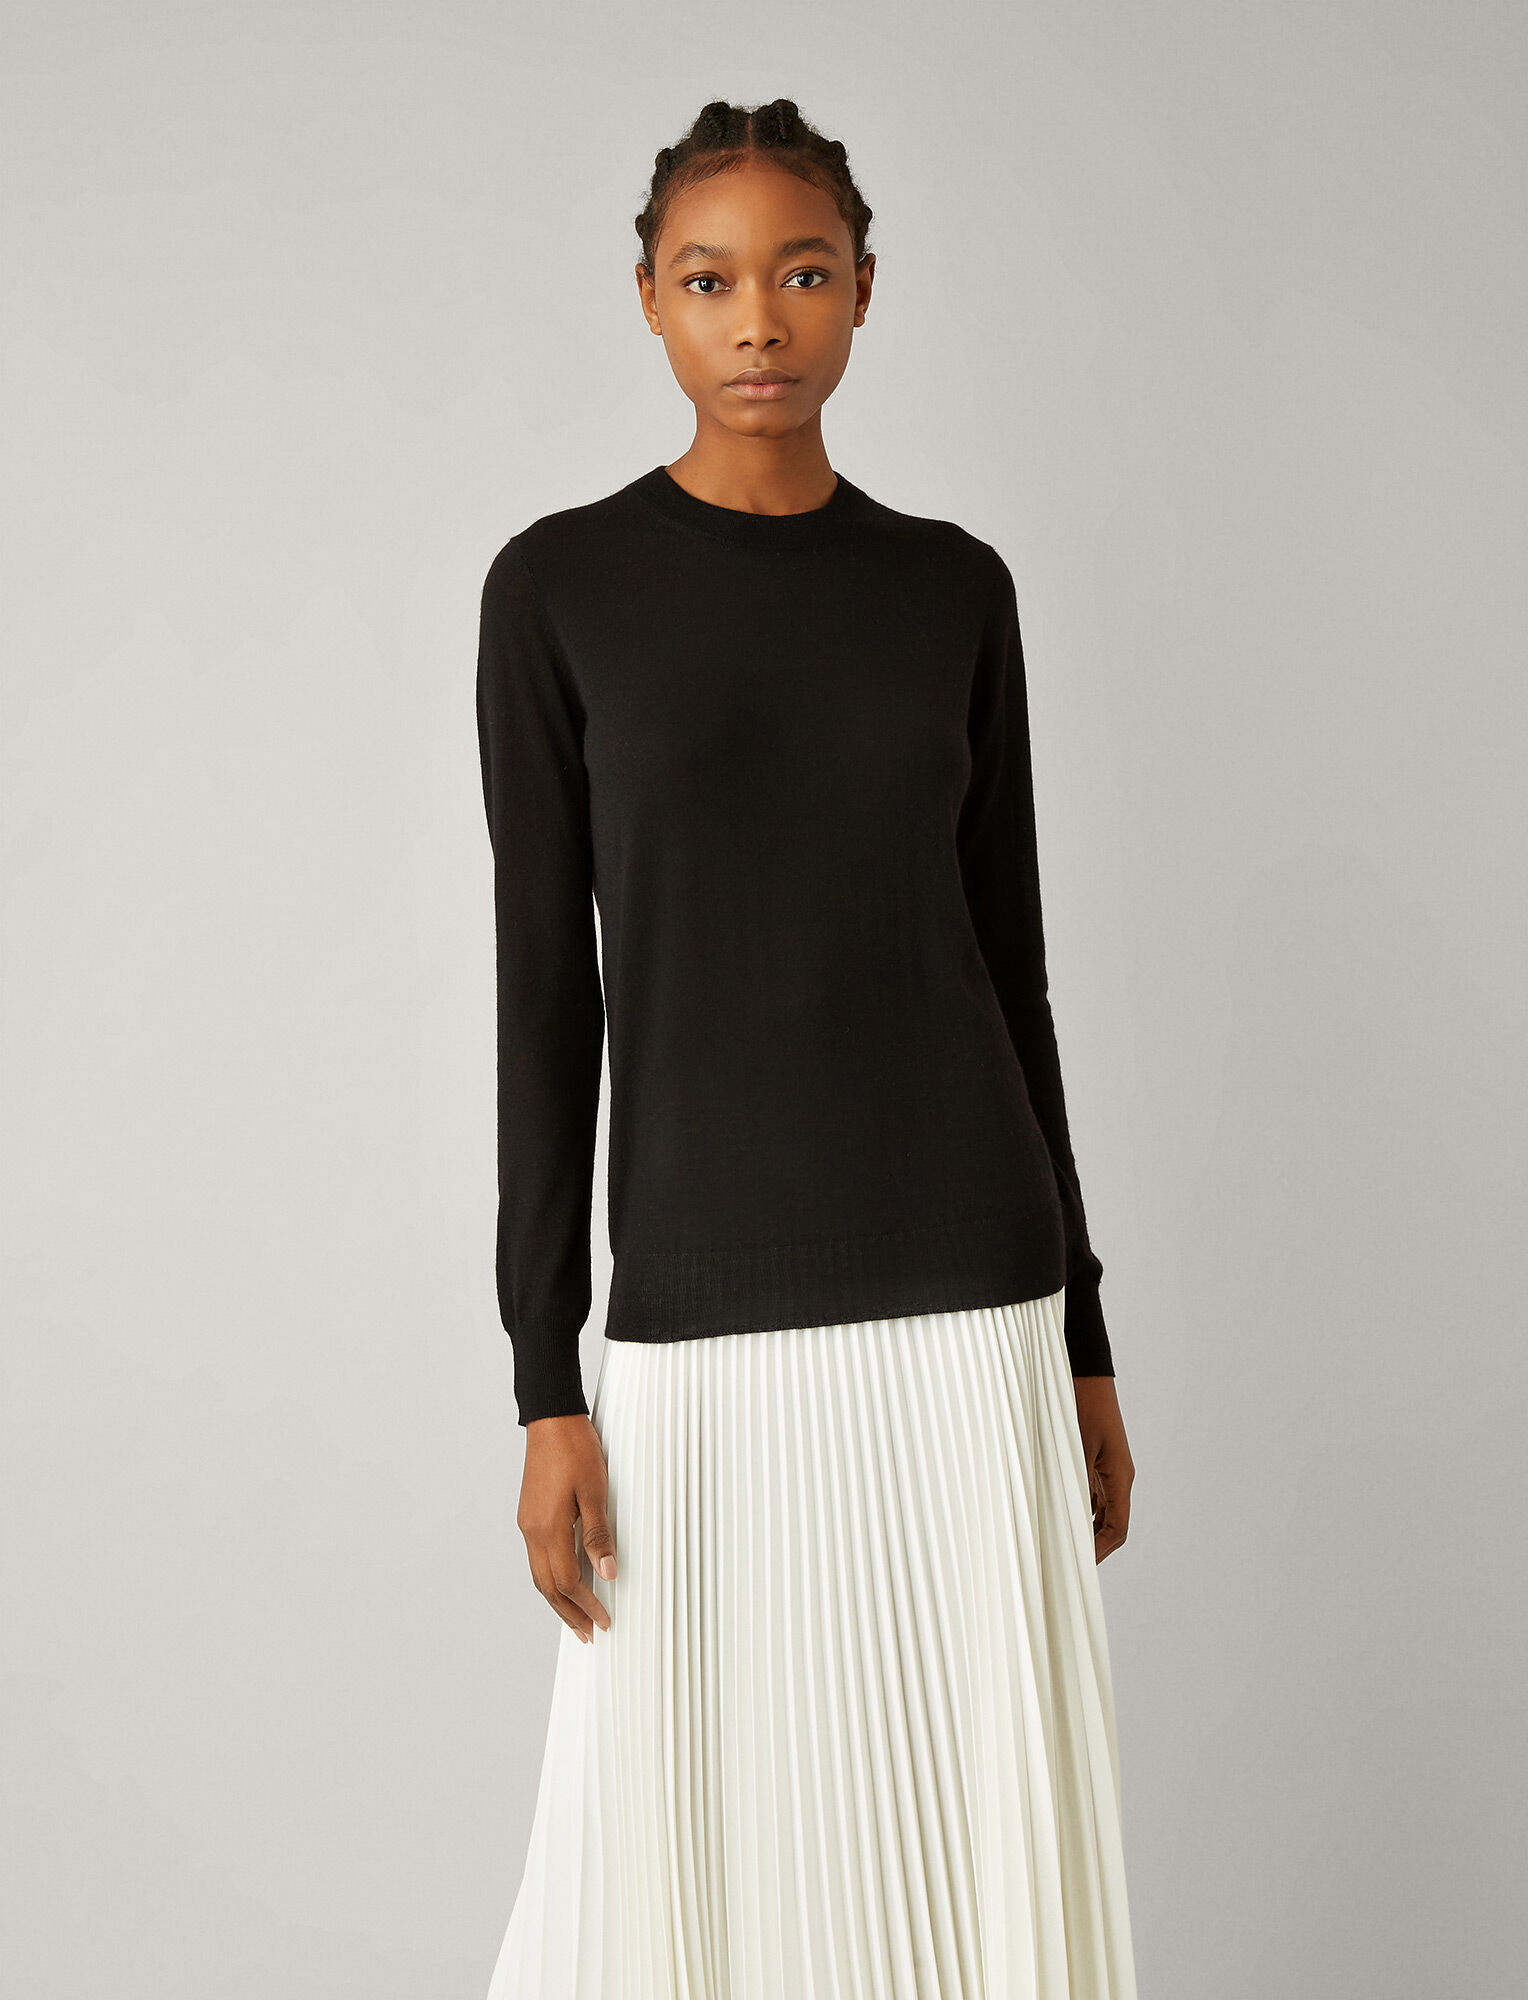 Joseph, Cashair Knit, in BLACK